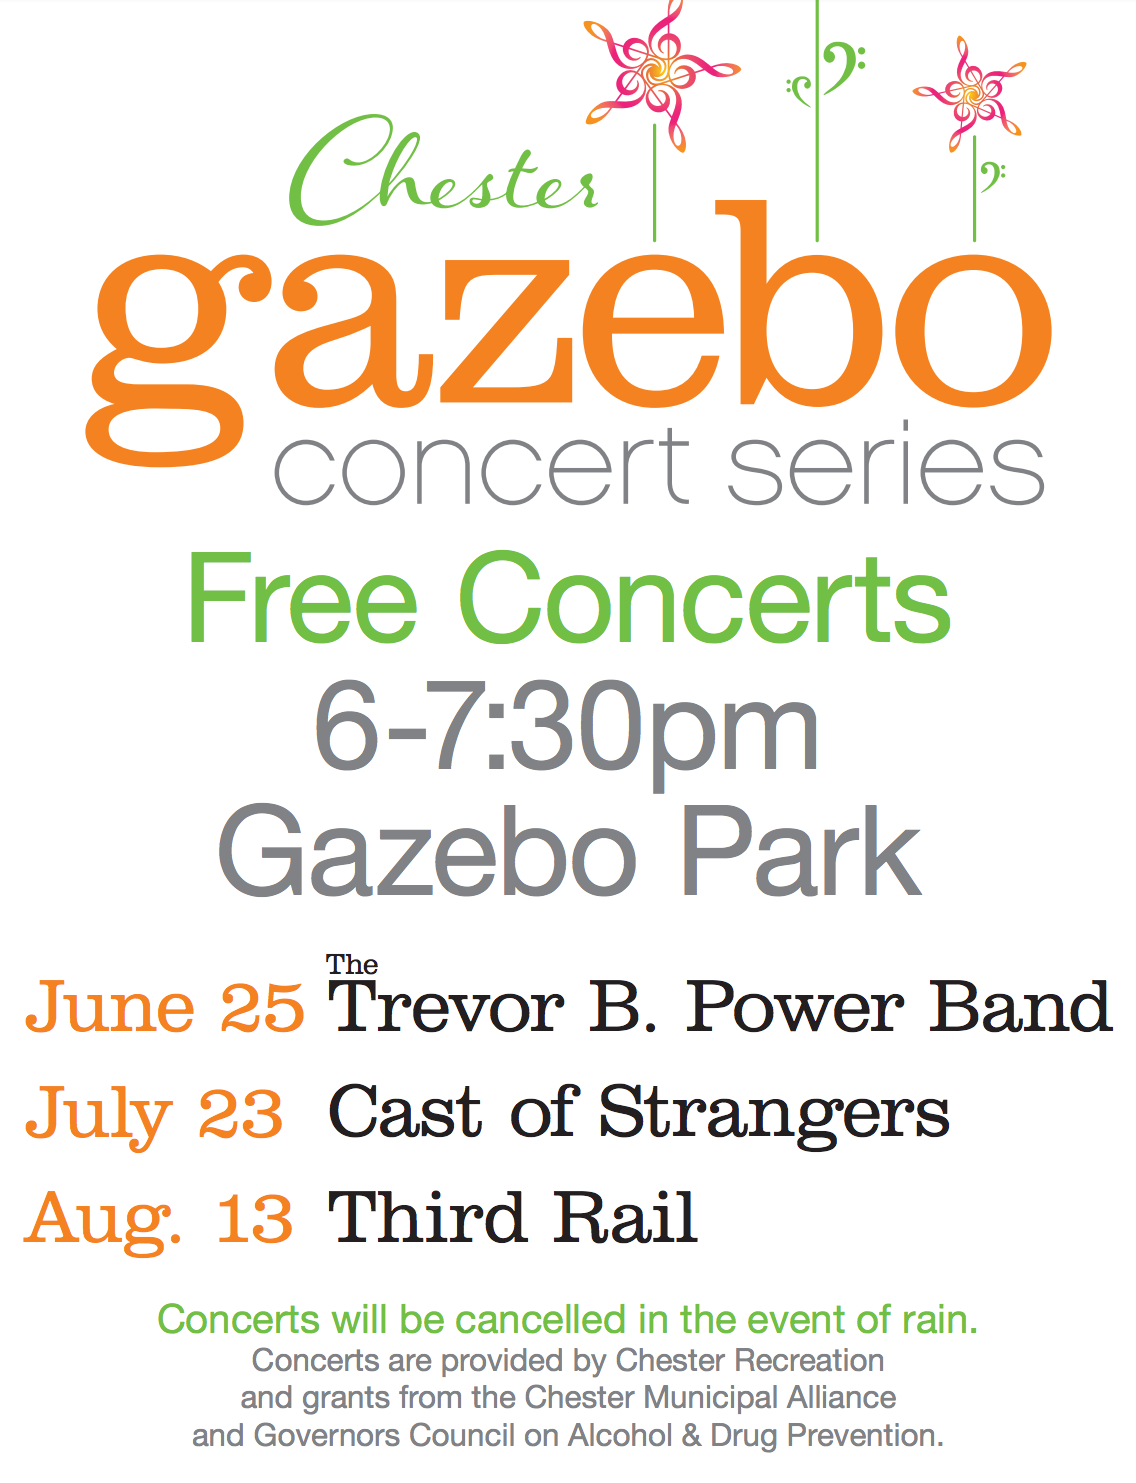 Gazebo Concert Series - Third Rail @ Gazebo Park | Chester | New Jersey | United States